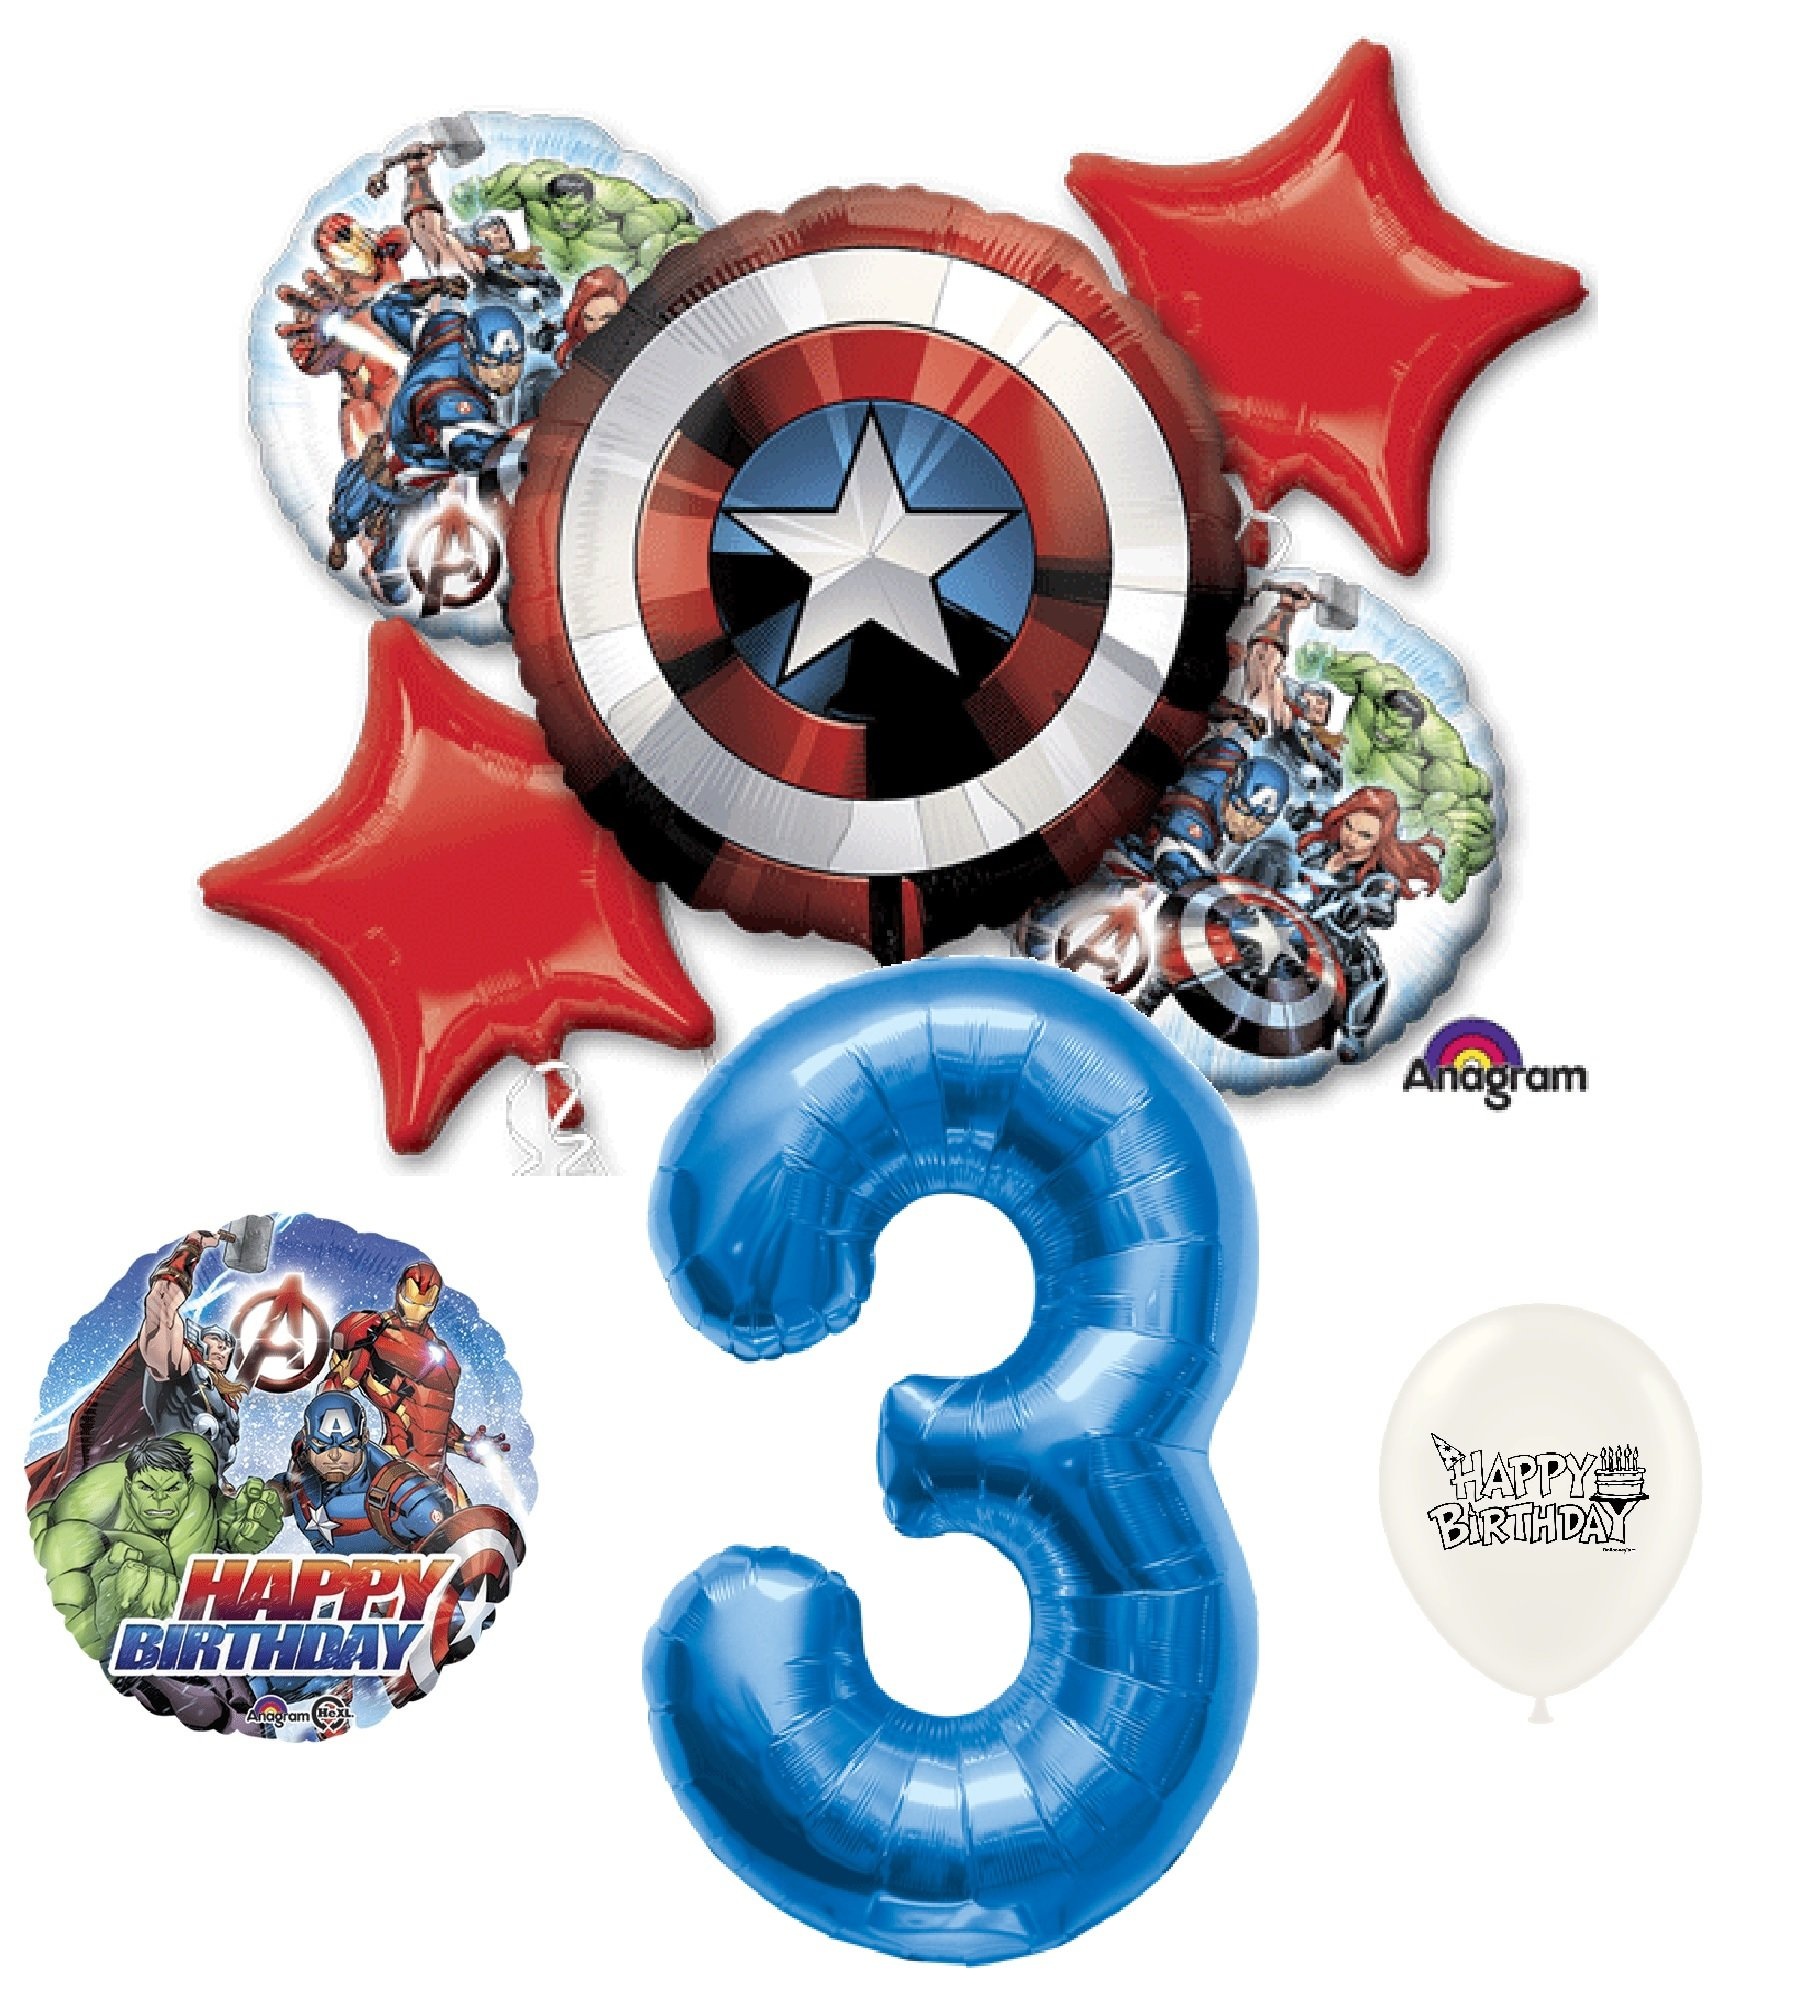 3rd Birthday Blue Number Avengers Captain America Shield Balloons Bouquet Bundle